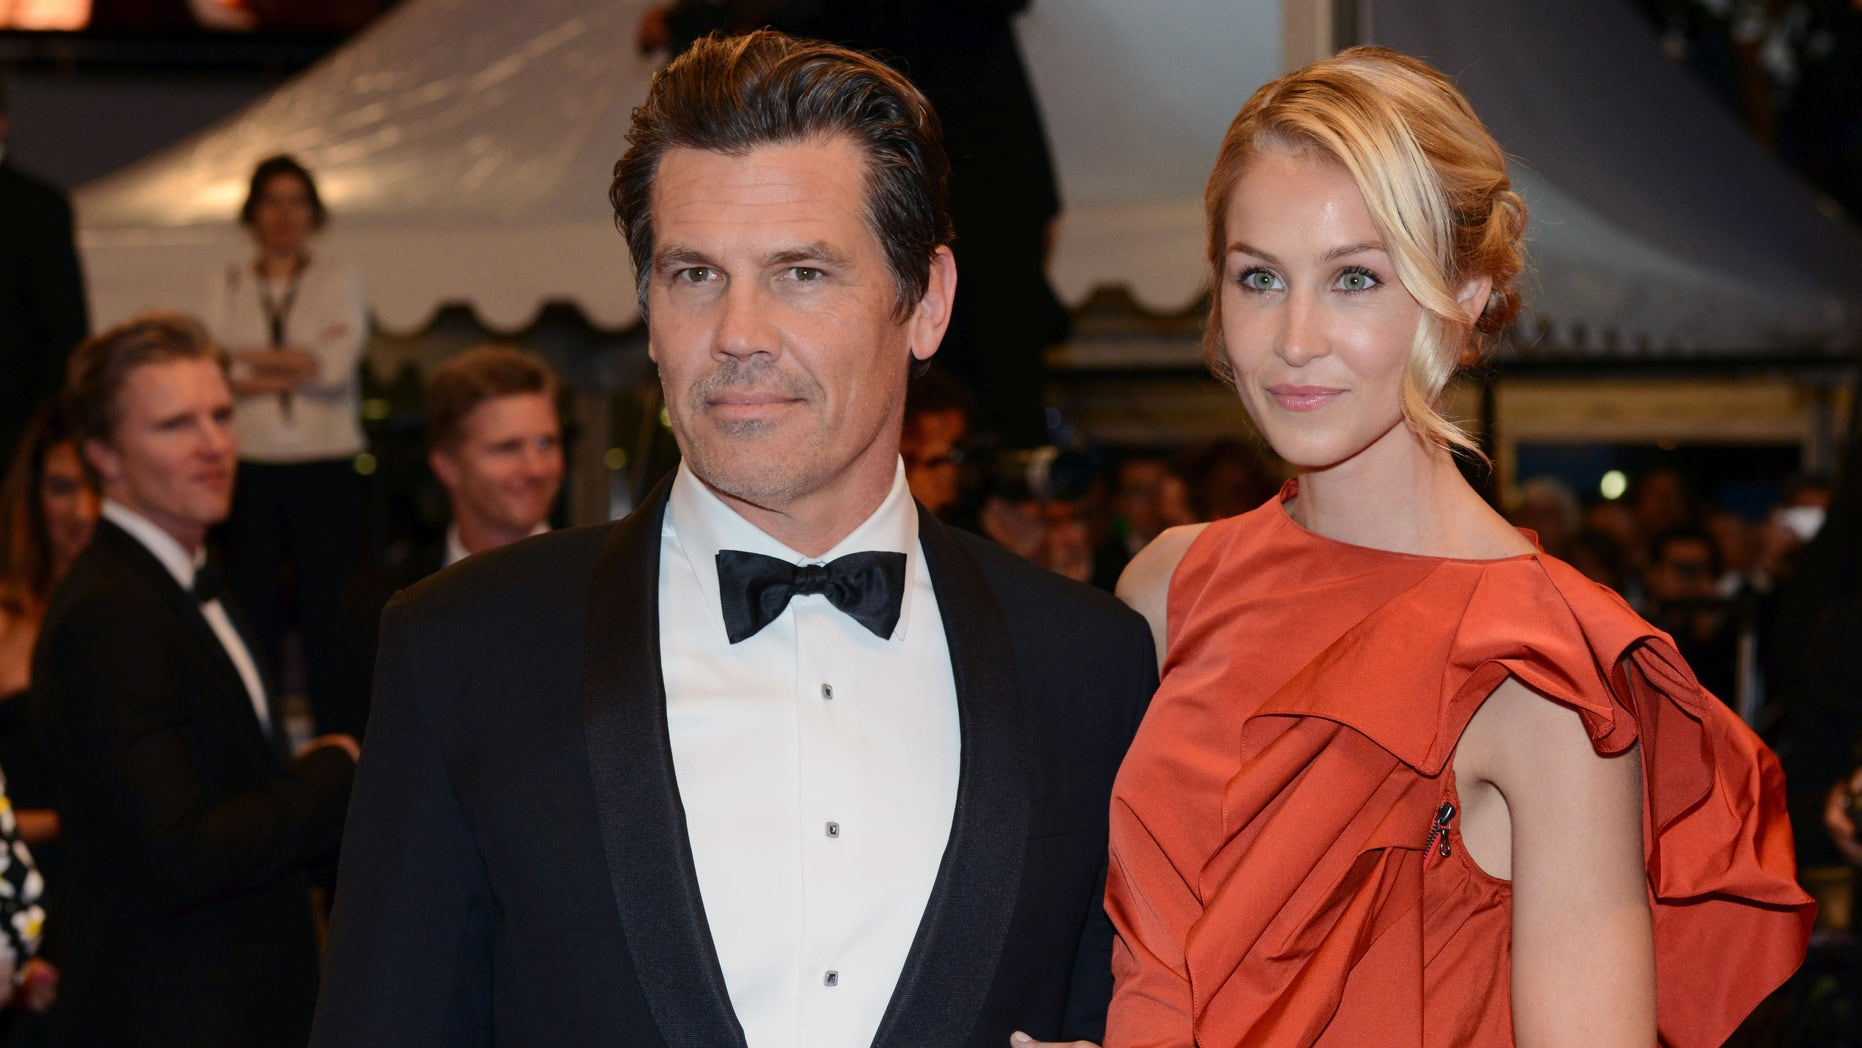 """Josh Brolin (L) and his then-girlfriend Kathryn Boyd pose on the red carpet as they leave after the screening of the film """"Sicario"""" in competition at the 68th Cannes Film Festival in Cannes, southern France, May 19, 2015."""